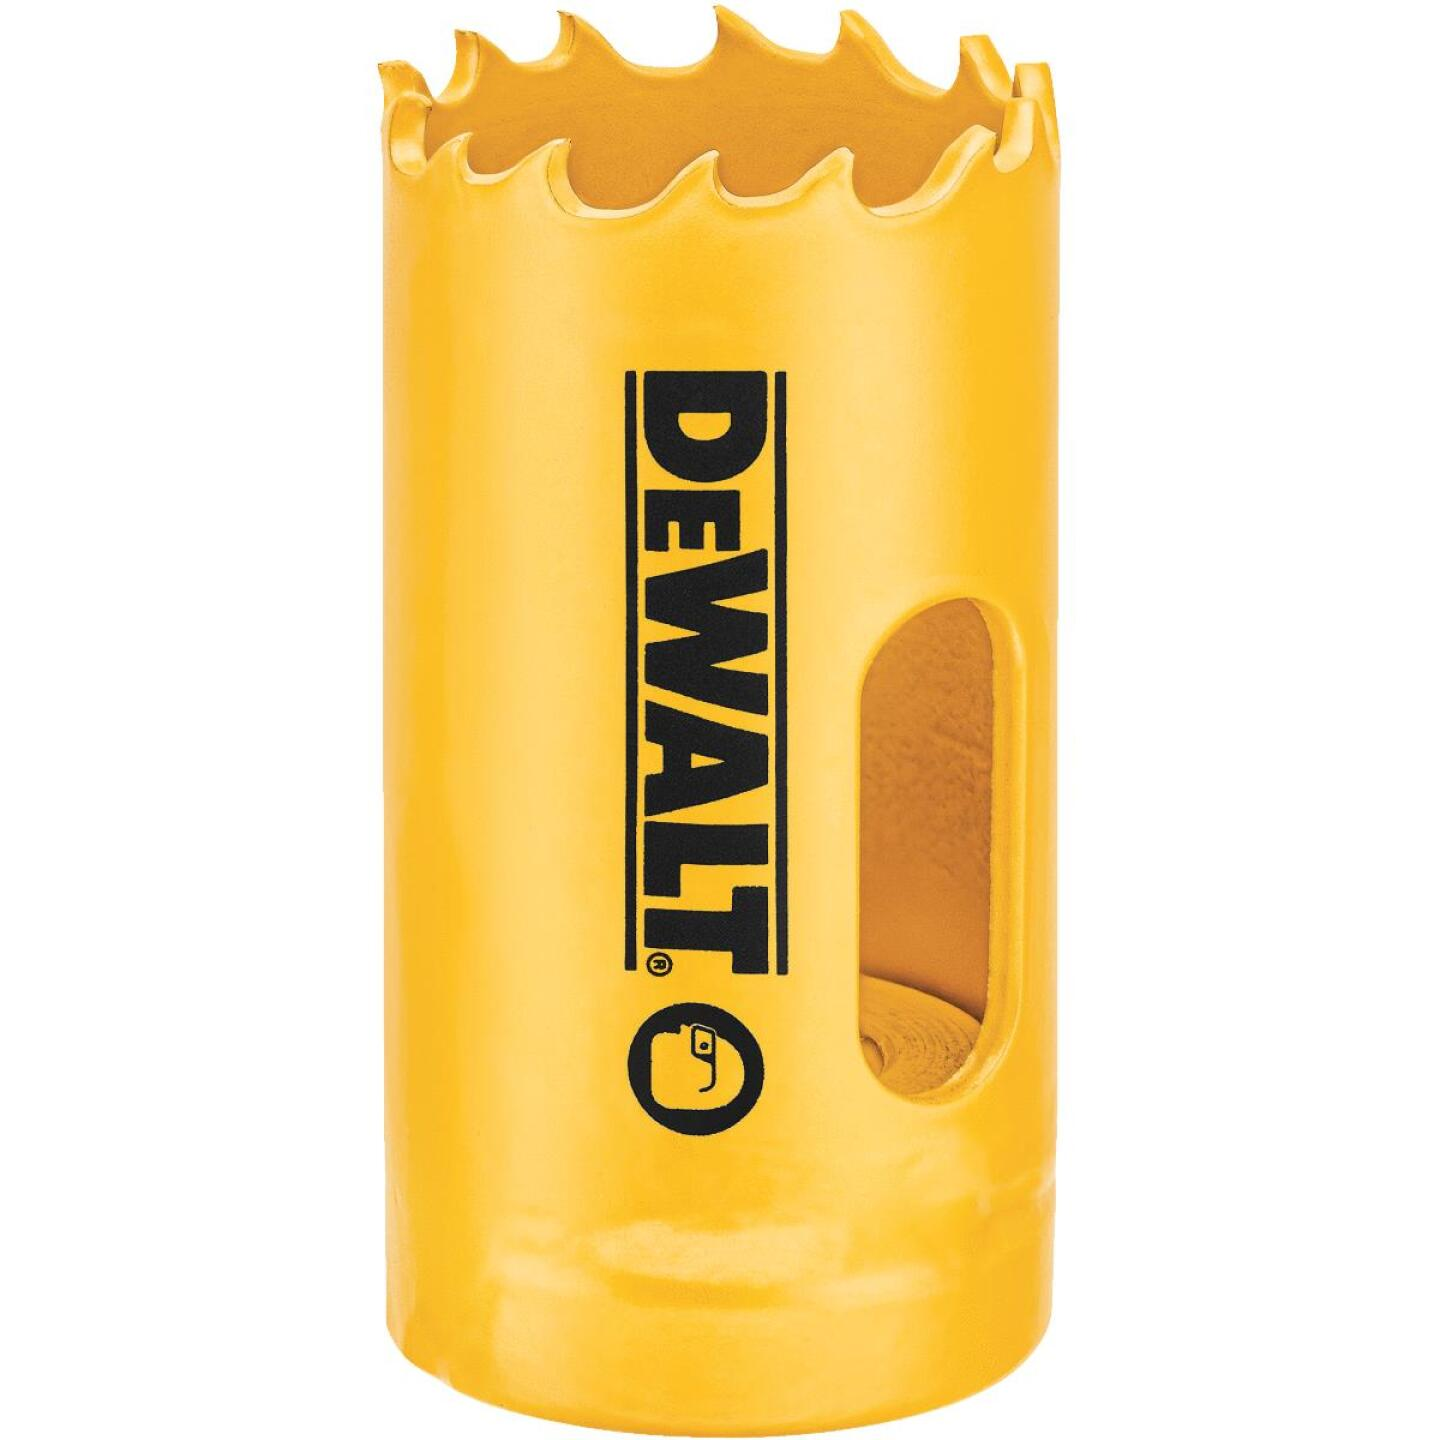 DeWalt 1 In. Bi-Metal Hole Saw Image 1